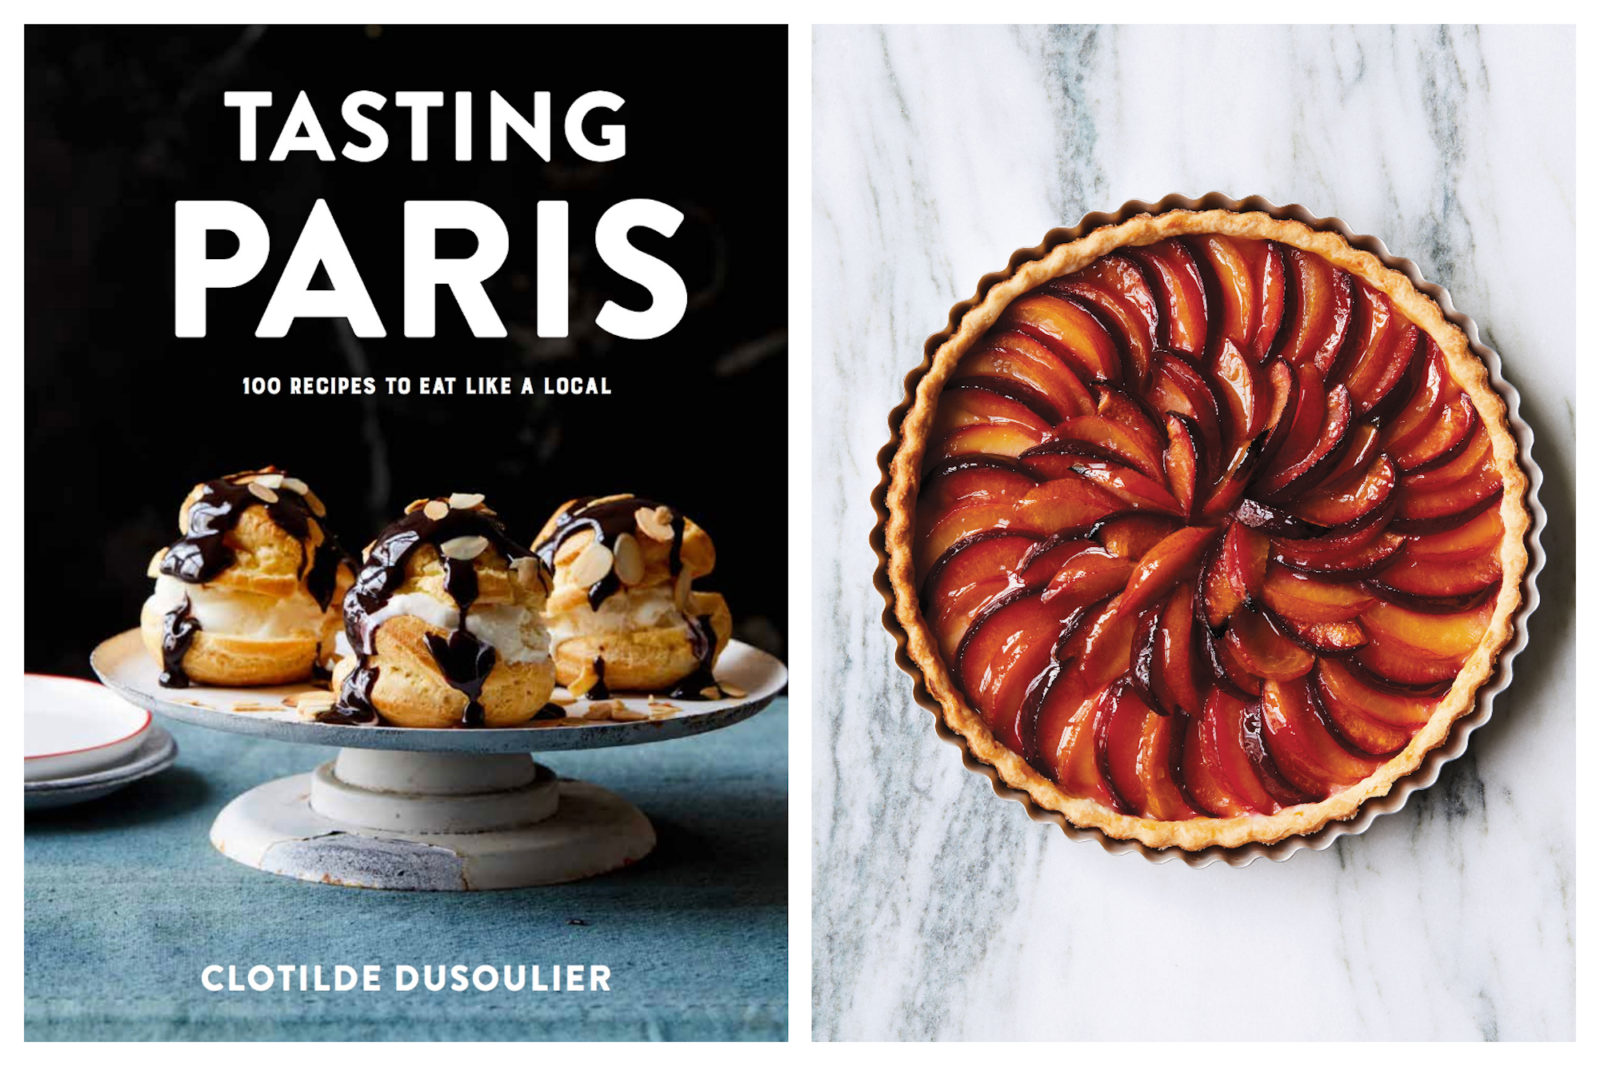 100 French food recipes by Clotilde Dusoulier in her cookbook 'Tasting Paris' Book (left). Beautiful whole caramelized plum tart from the book (left).